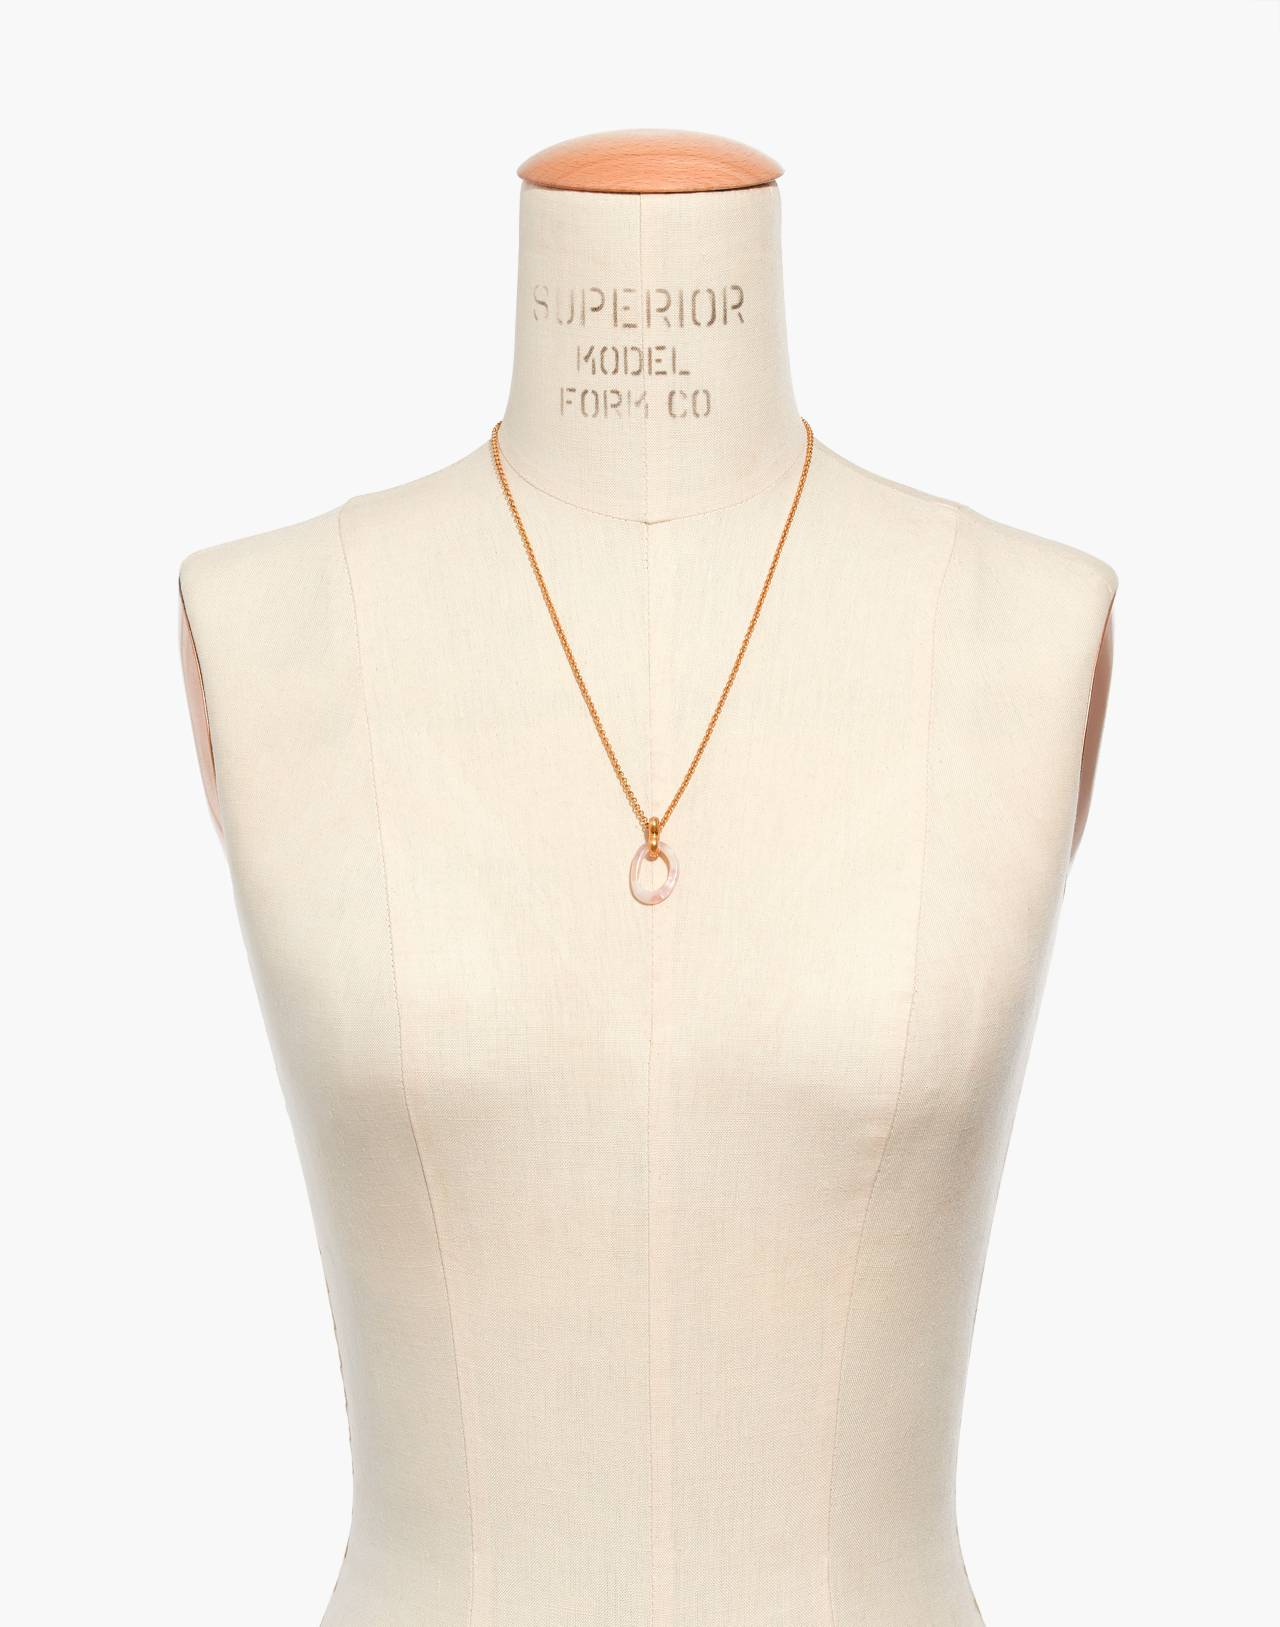 Acrylic Link Necklace in blush tort image 3